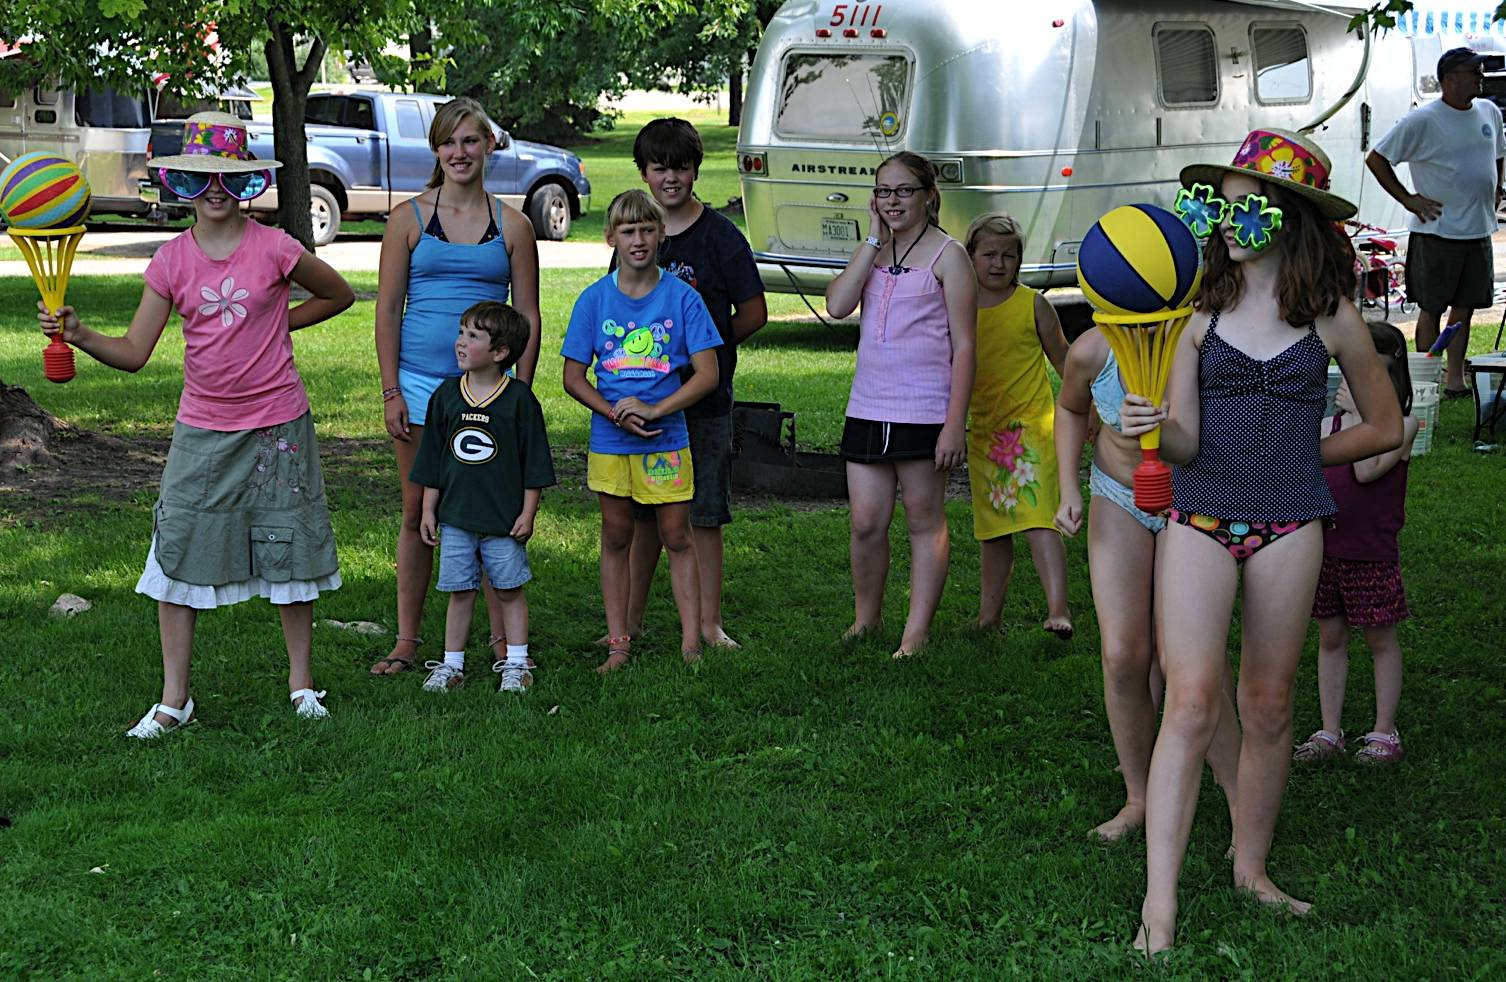 Click image for larger version  Name:Pipe_kids_1.jpg Views:71 Size:285.3 KB ID:87720